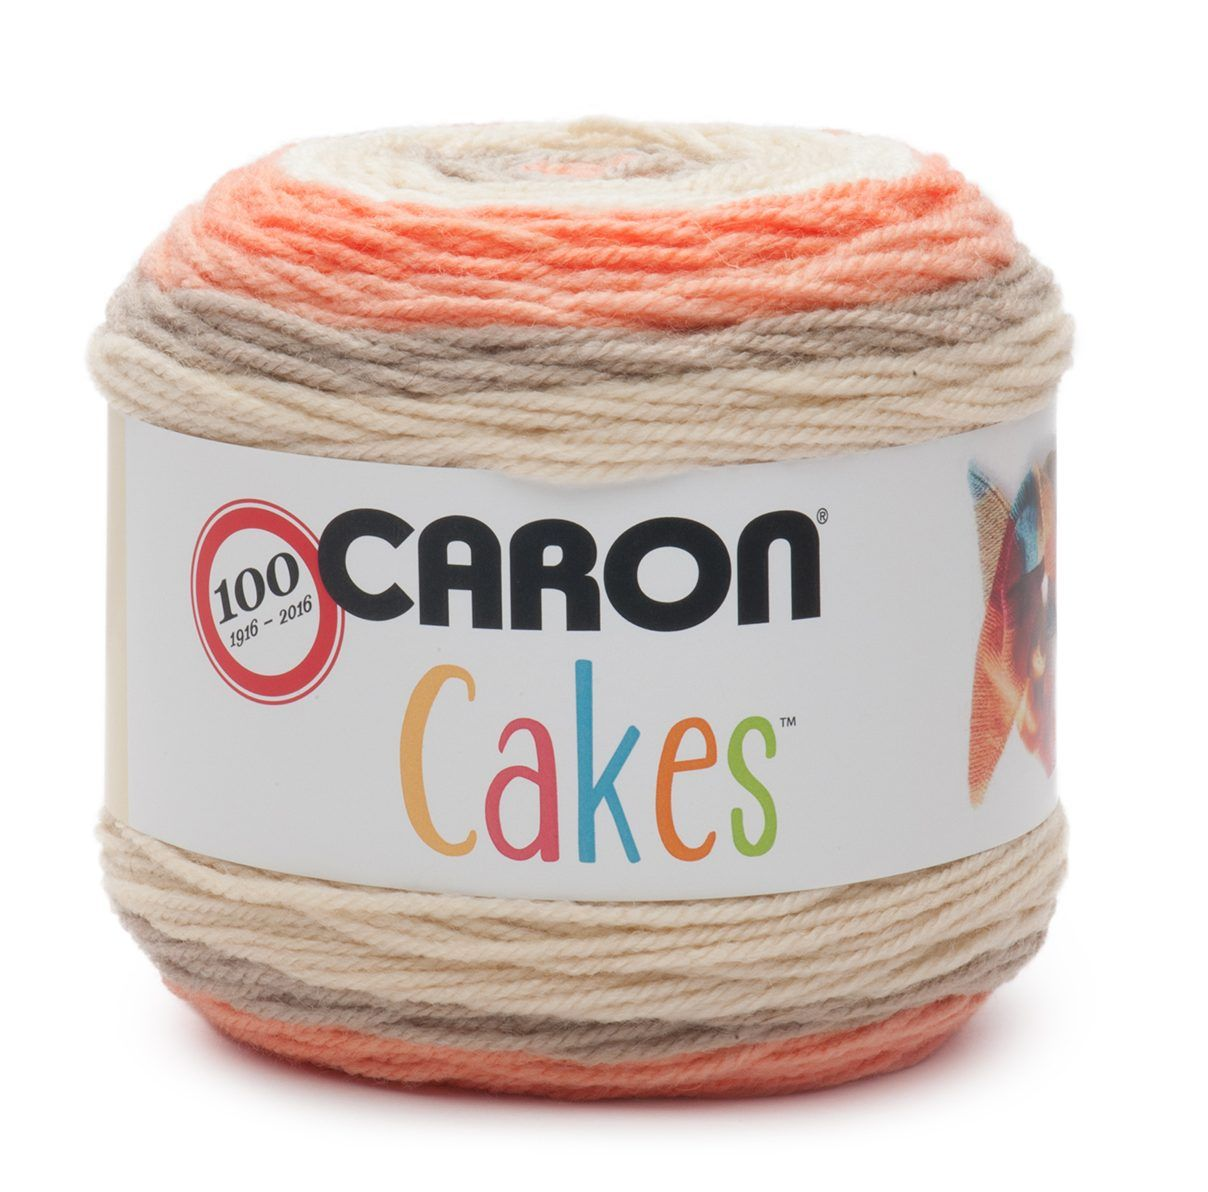 Free Crochet Patterns Featuring Caron Cakes Yarn